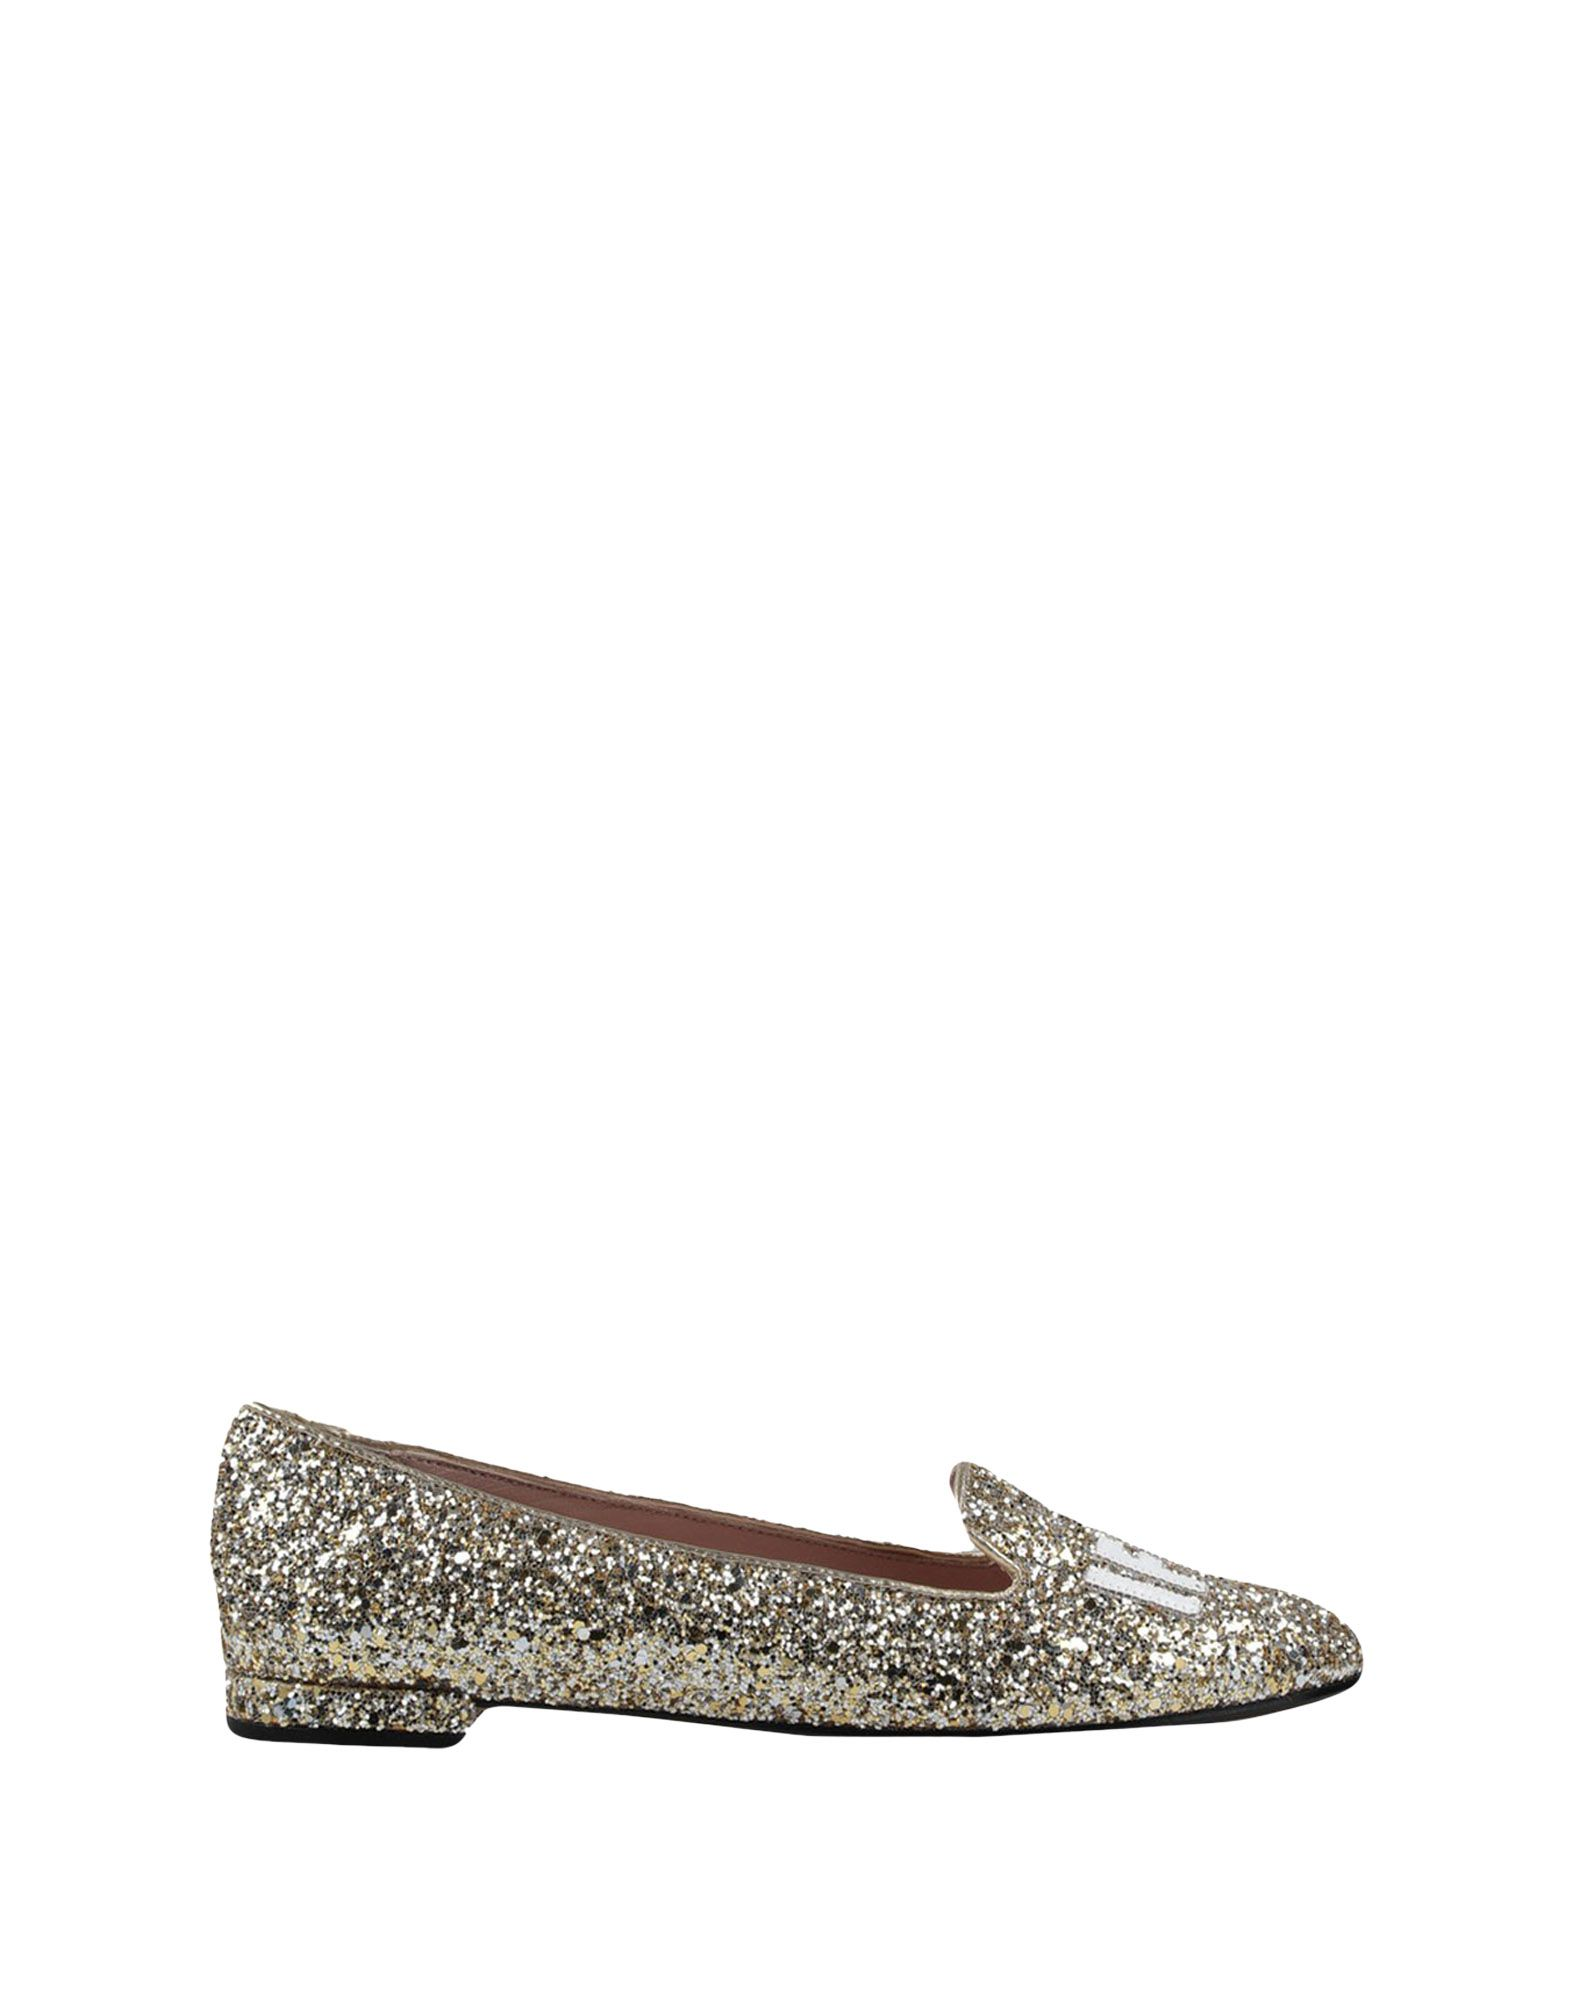 Chiara Chiara Ferragni Loafers - Women Chiara Chiara Ferragni Loafers online on  Canada - 11548618UK fc3e61